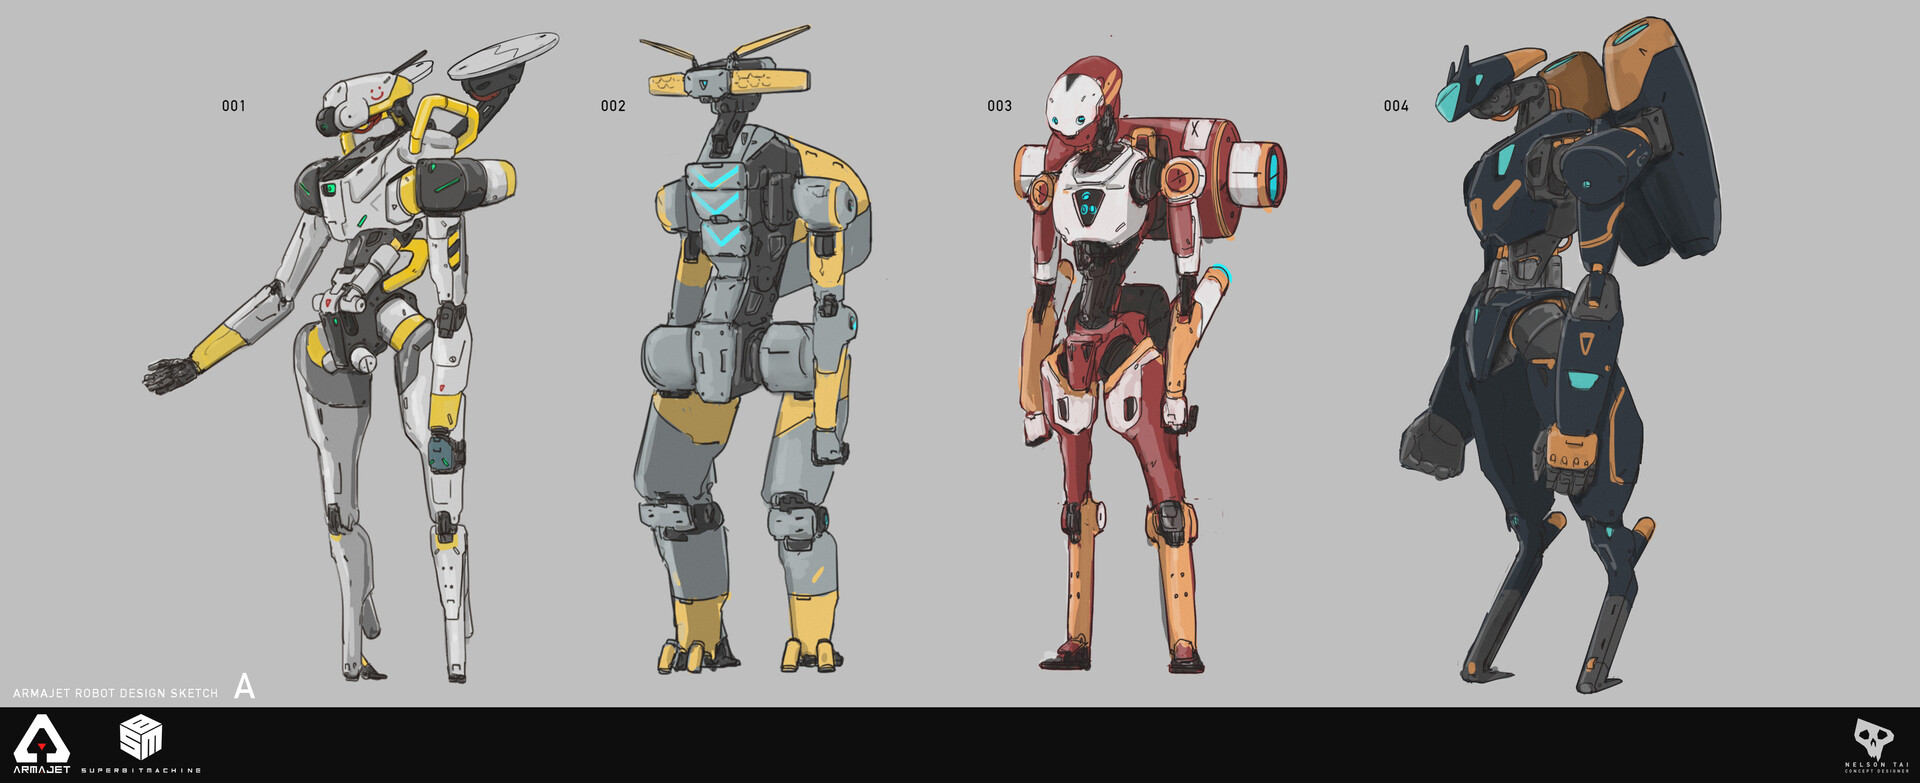 I can imagine #004 to be a really fast and agile robo.